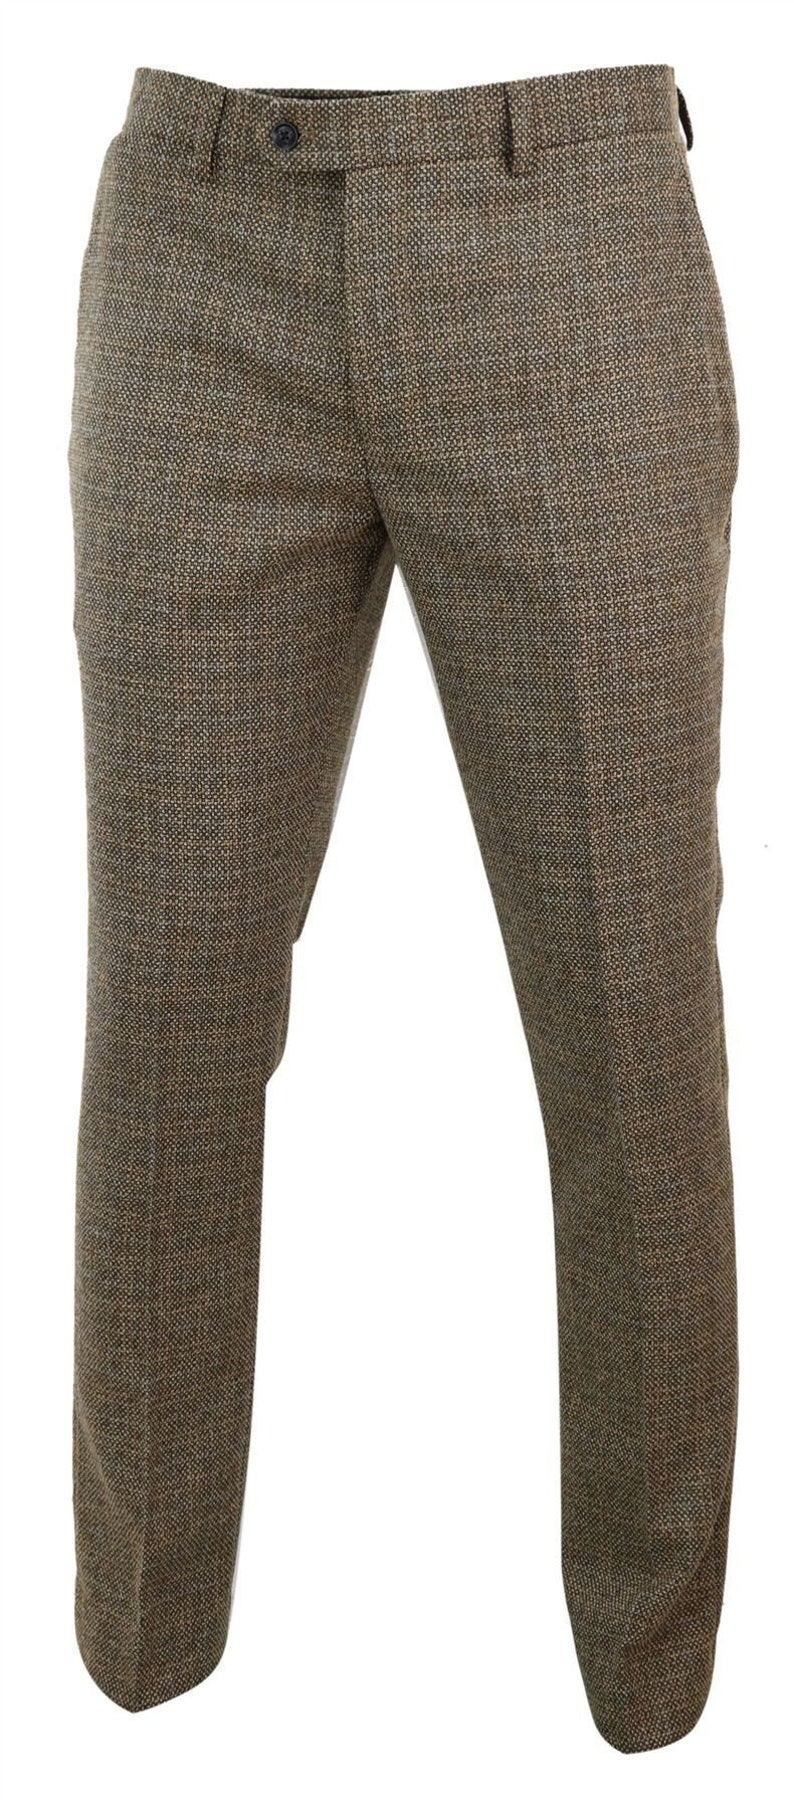 1920s Men's Pants History: Oxford Bags, Plus Four Knickers, Overalls     Mens trousers tweed check vintage retro  tailored fit 1920s $72.13 AT vintagedancer.com